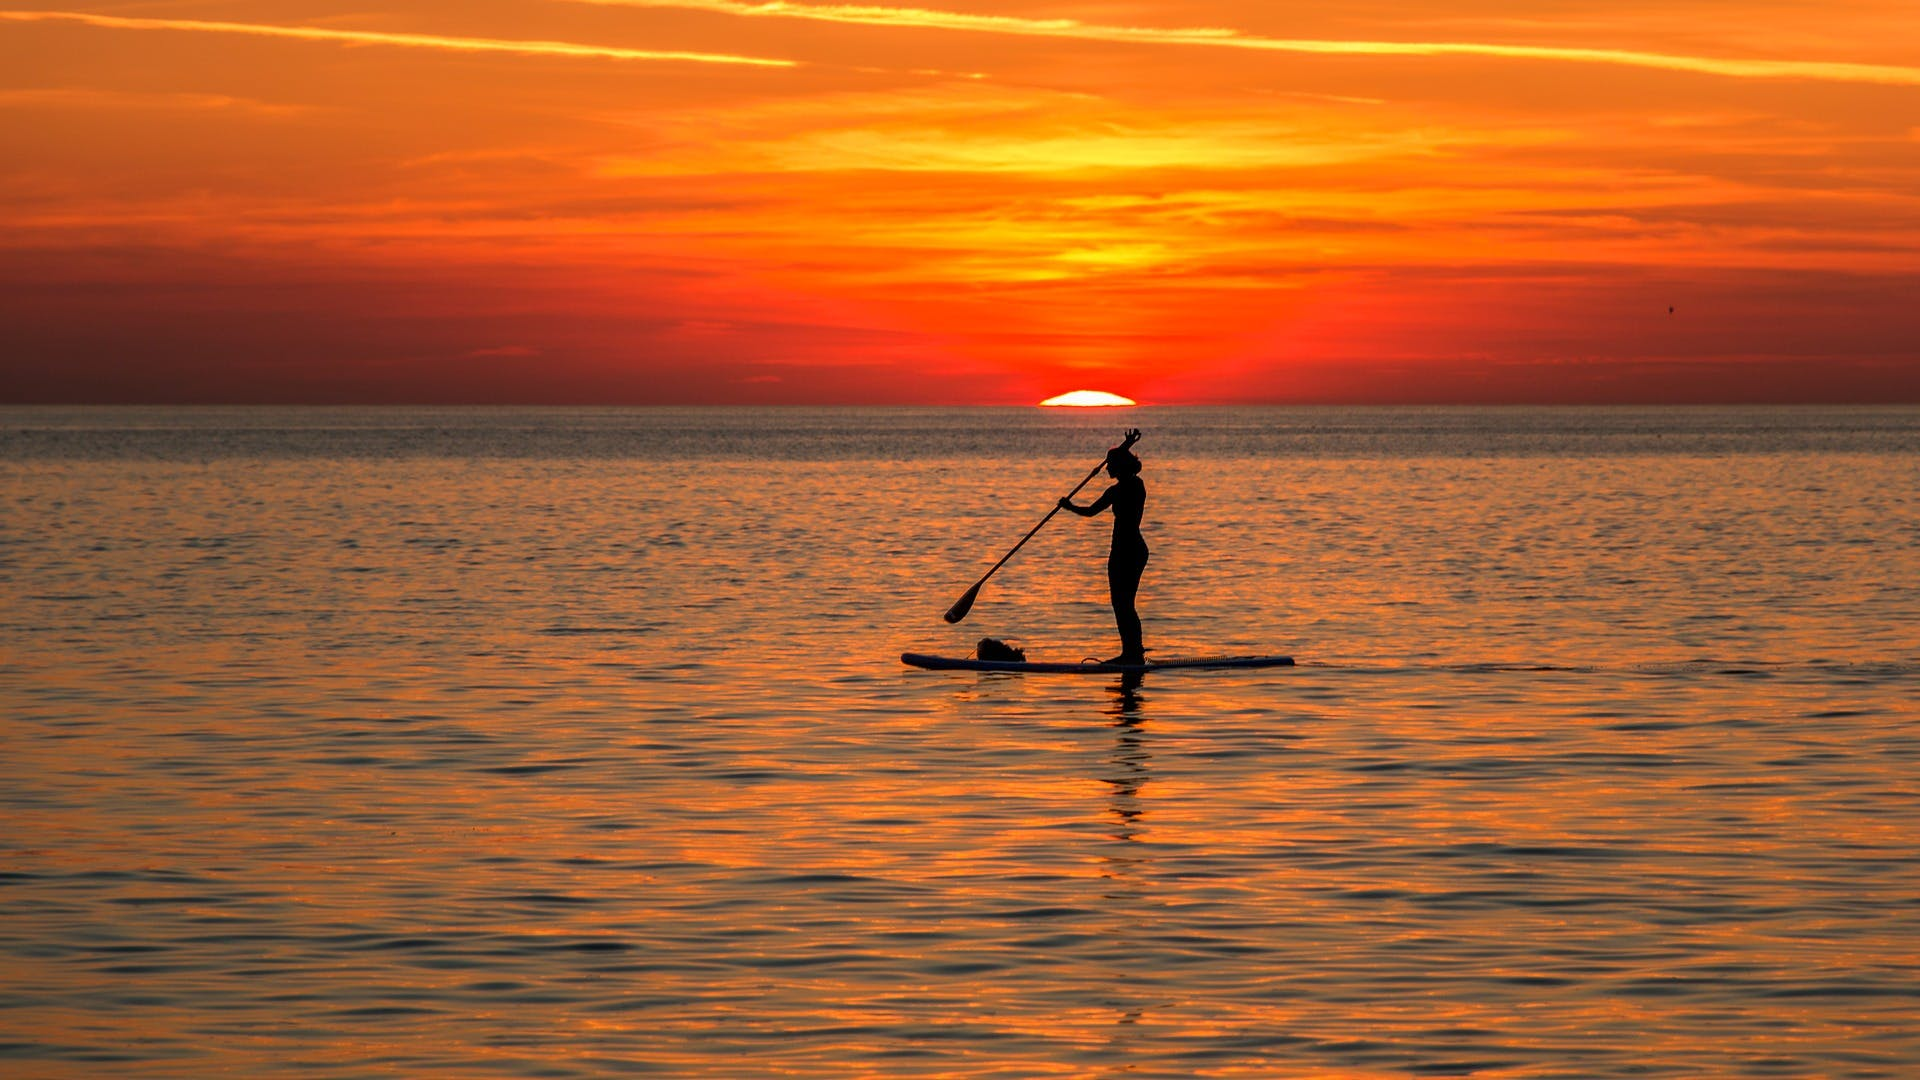 Paddle boarding at Steven's - Warroora